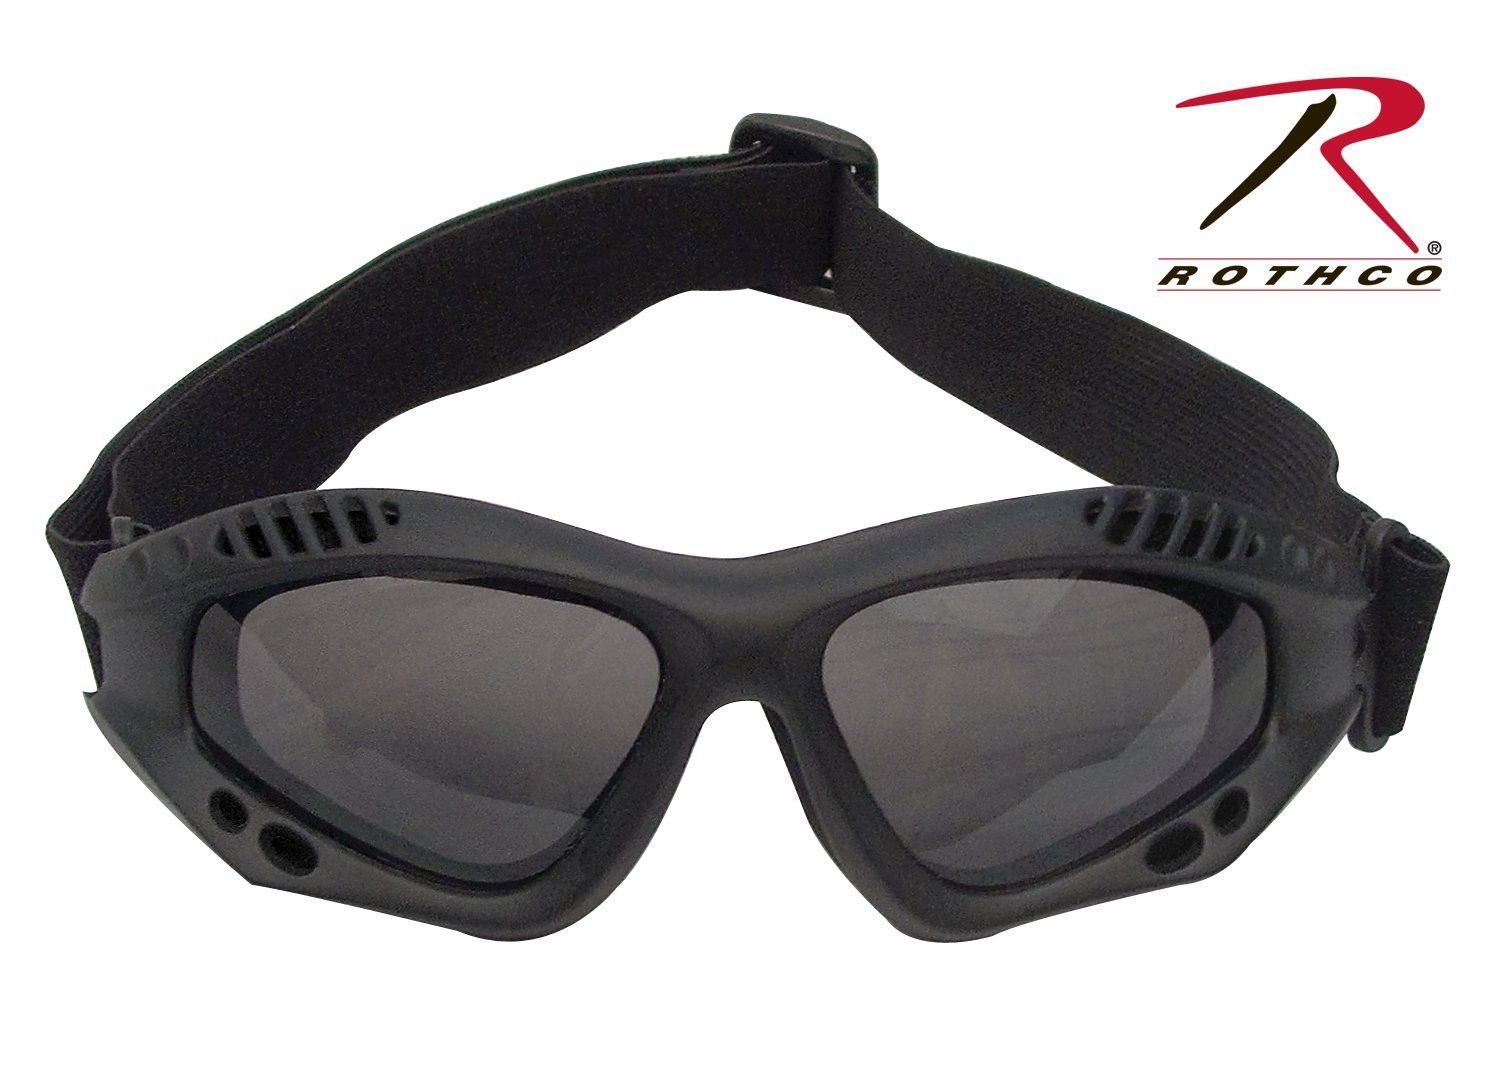 Rothco ANSI Rated Tactical Goggles Tactical sunglasses